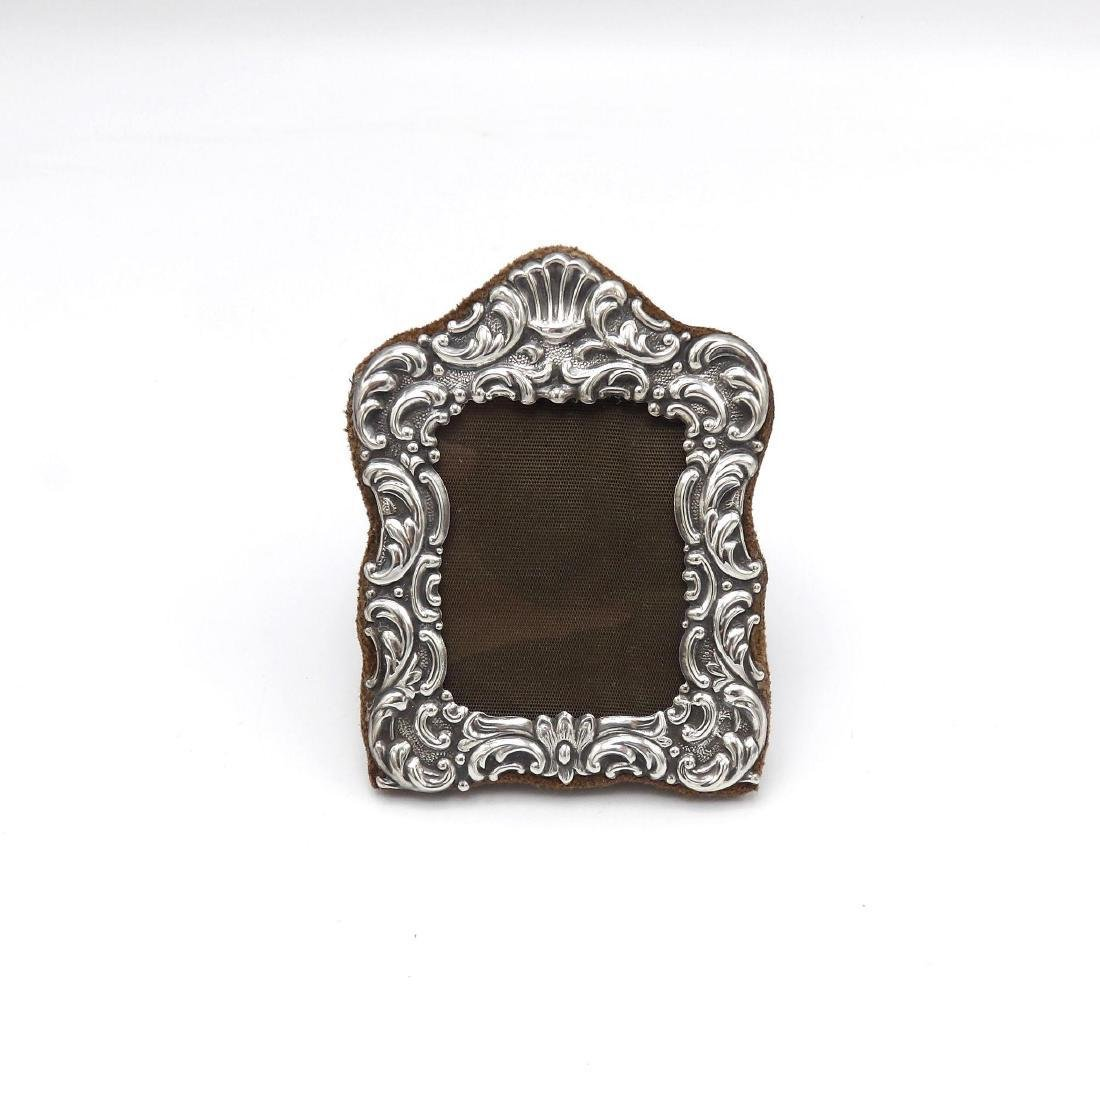 Vintage Italian Sterling Silver Repousse Picture Frame - 2